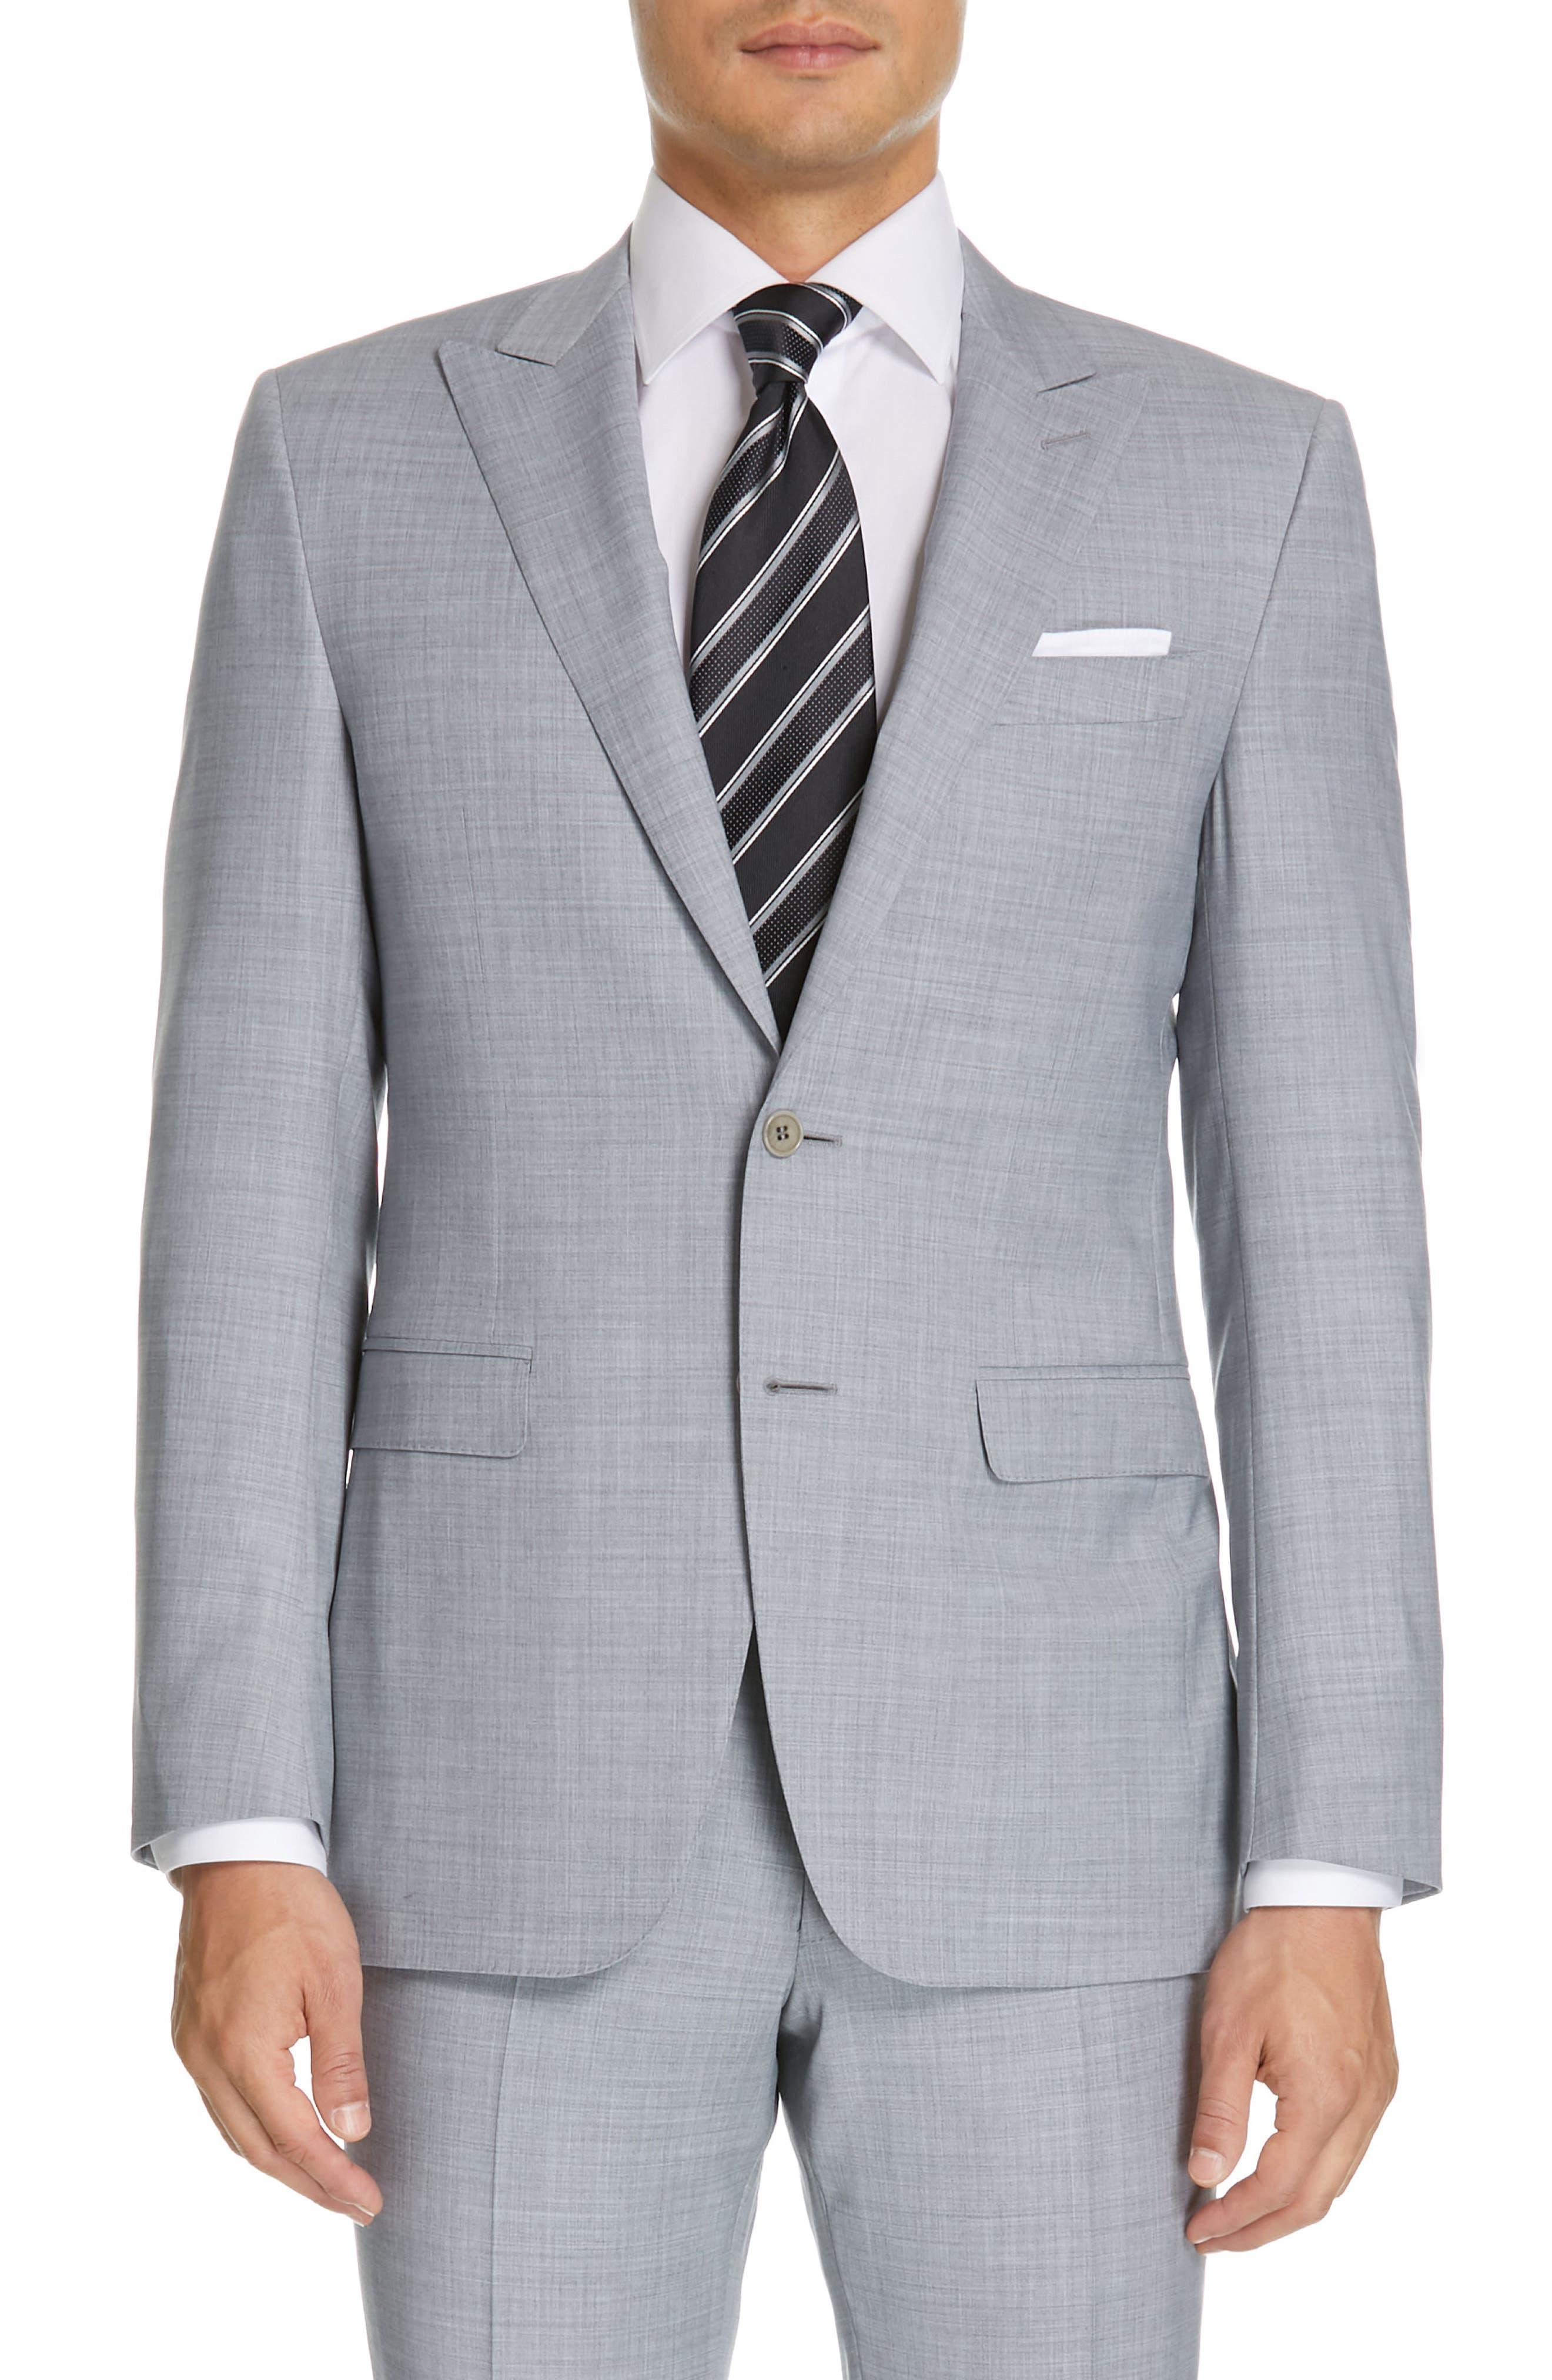 CANALI, Milano Classic Fit Solid Wool Suit, Alternate thumbnail 5, color, LIGHT GREY